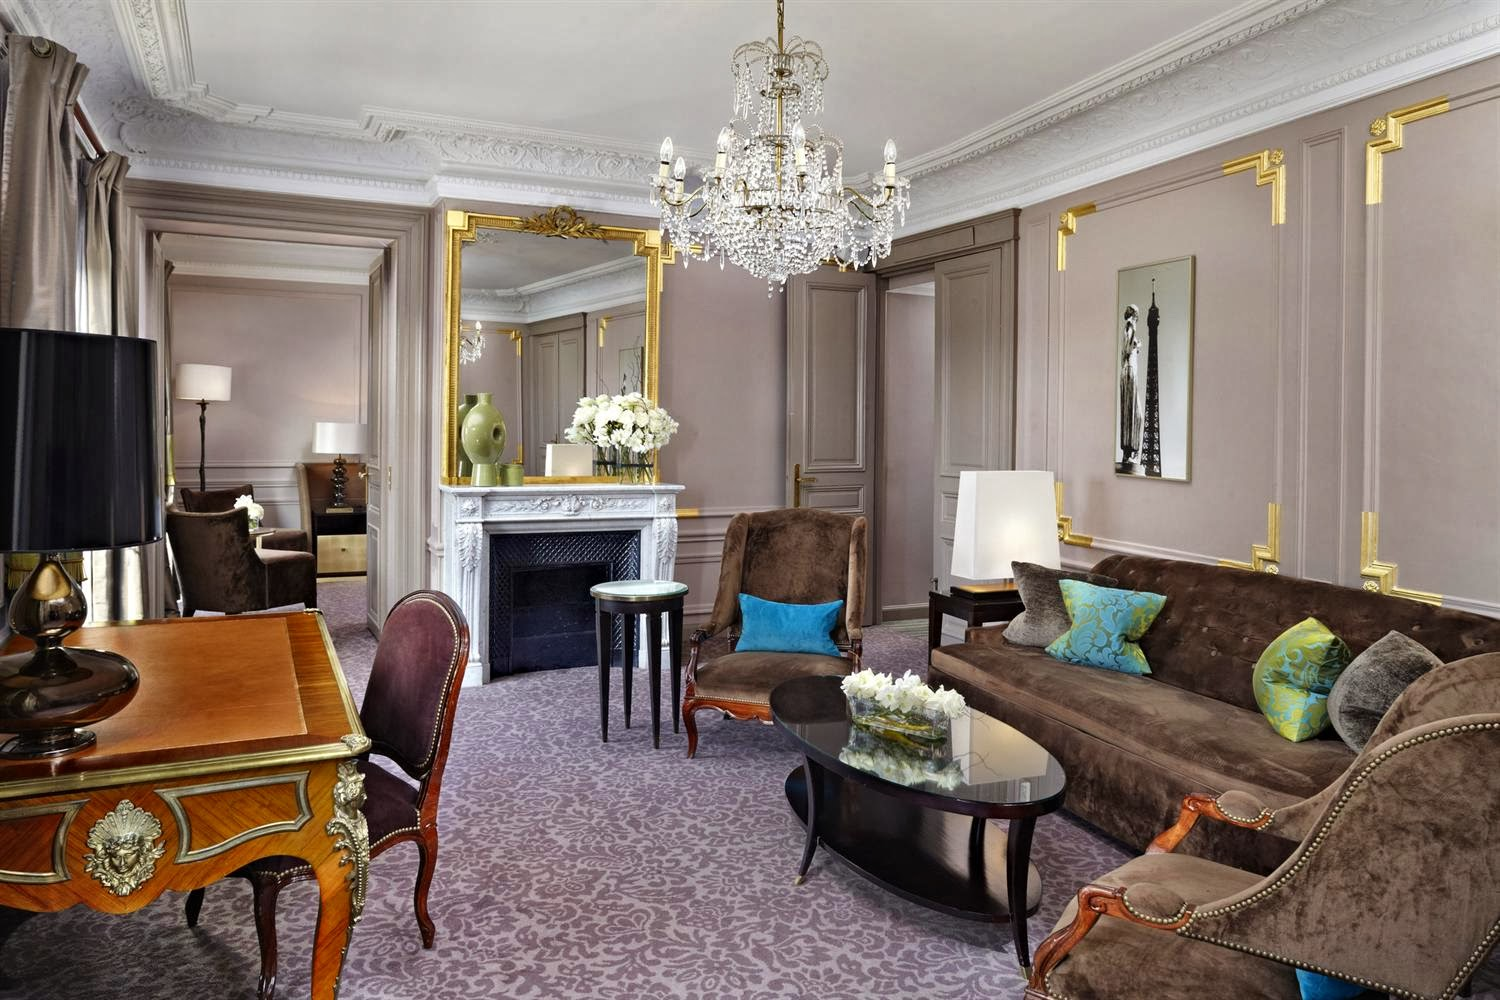 Parigi (Francia) - The Westin Paris - Vendôme 4* - Hotel da Sogno